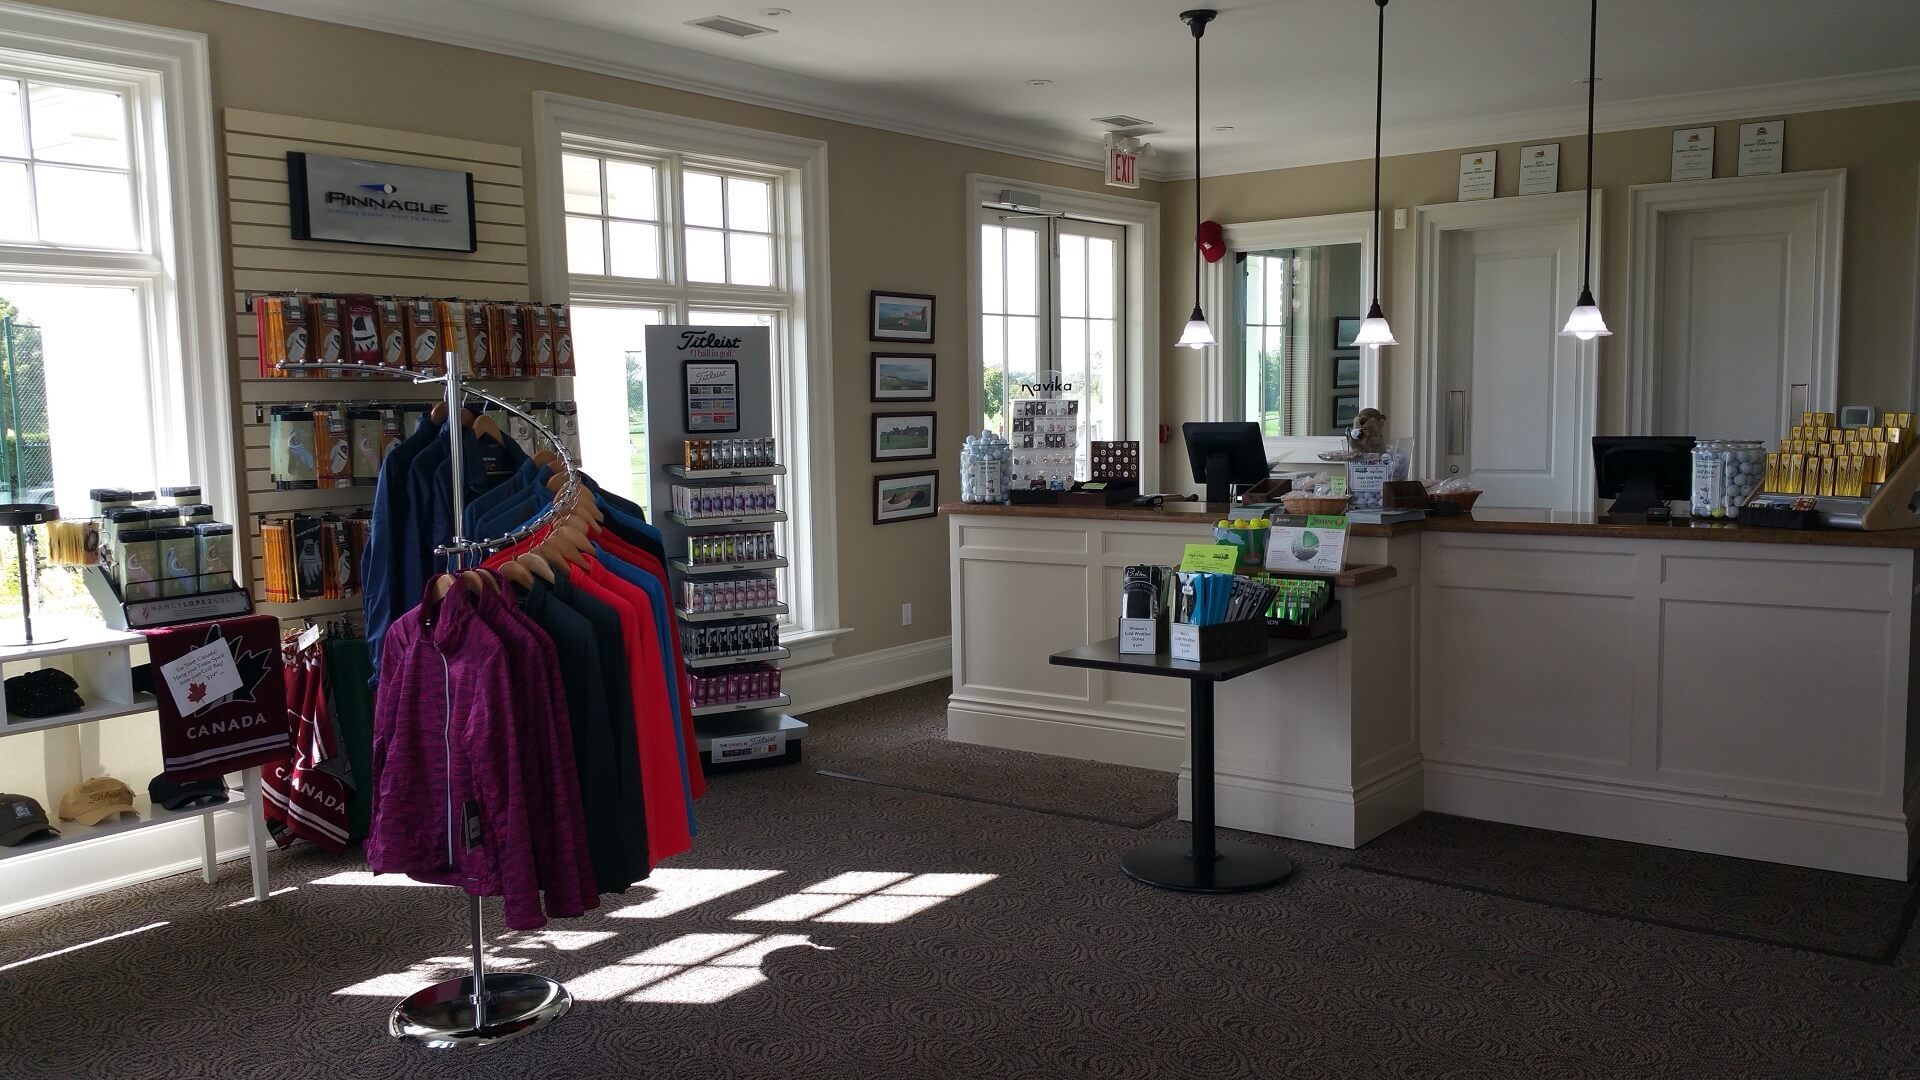 oakville executive golf shop